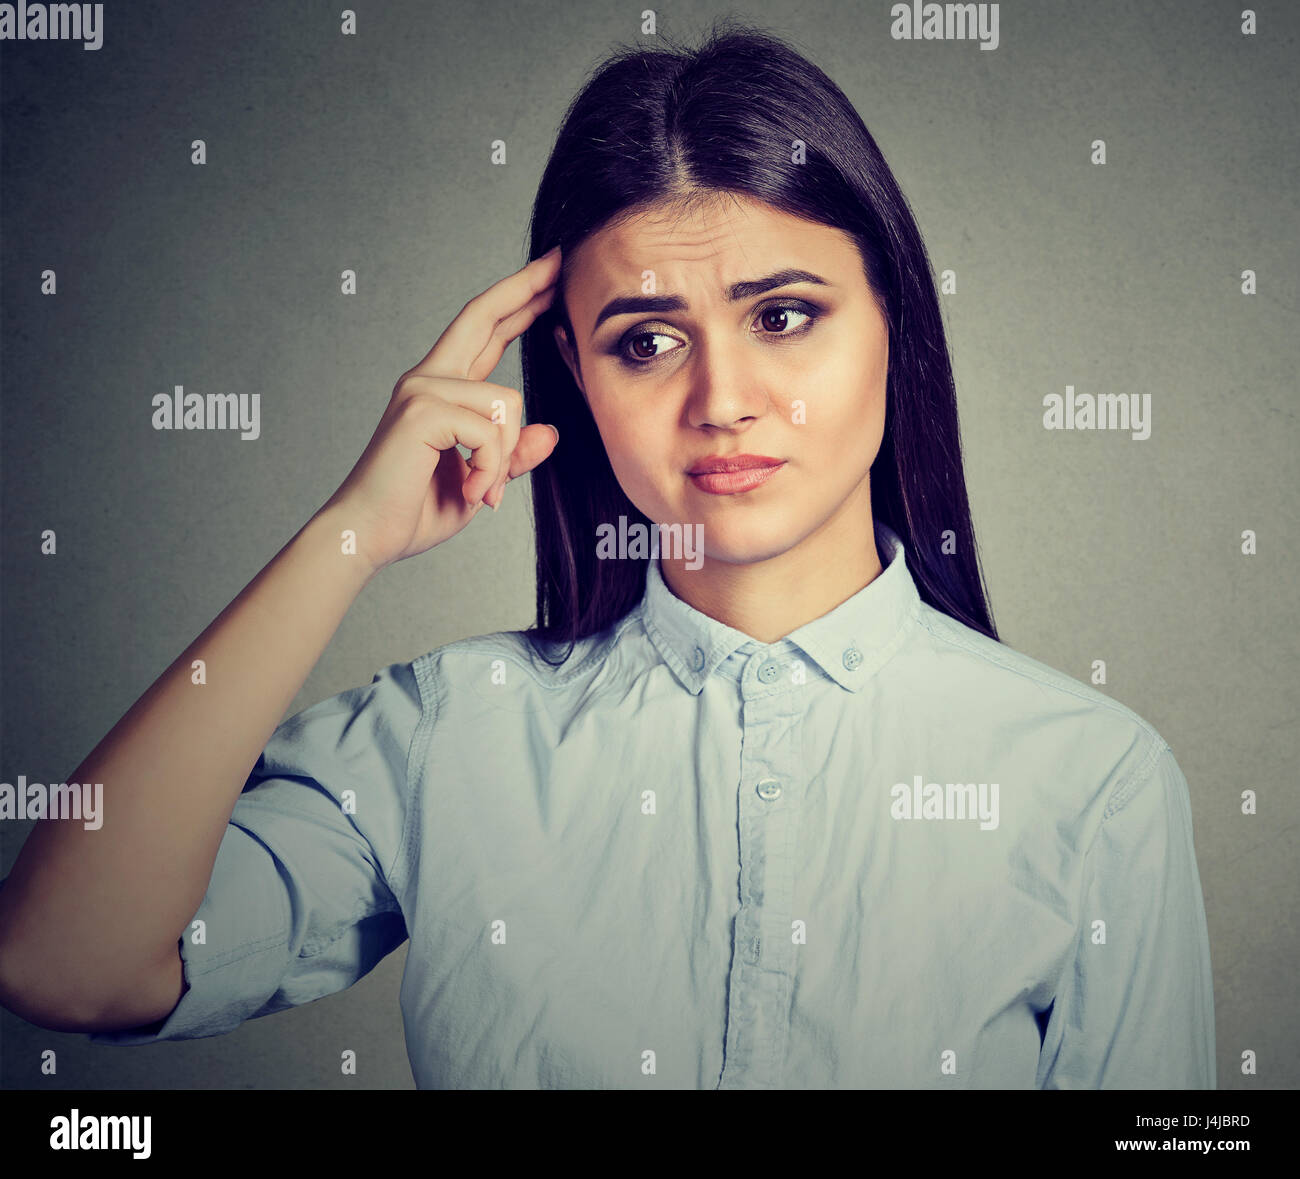 Worried pensive young woman thinking - Stock Image